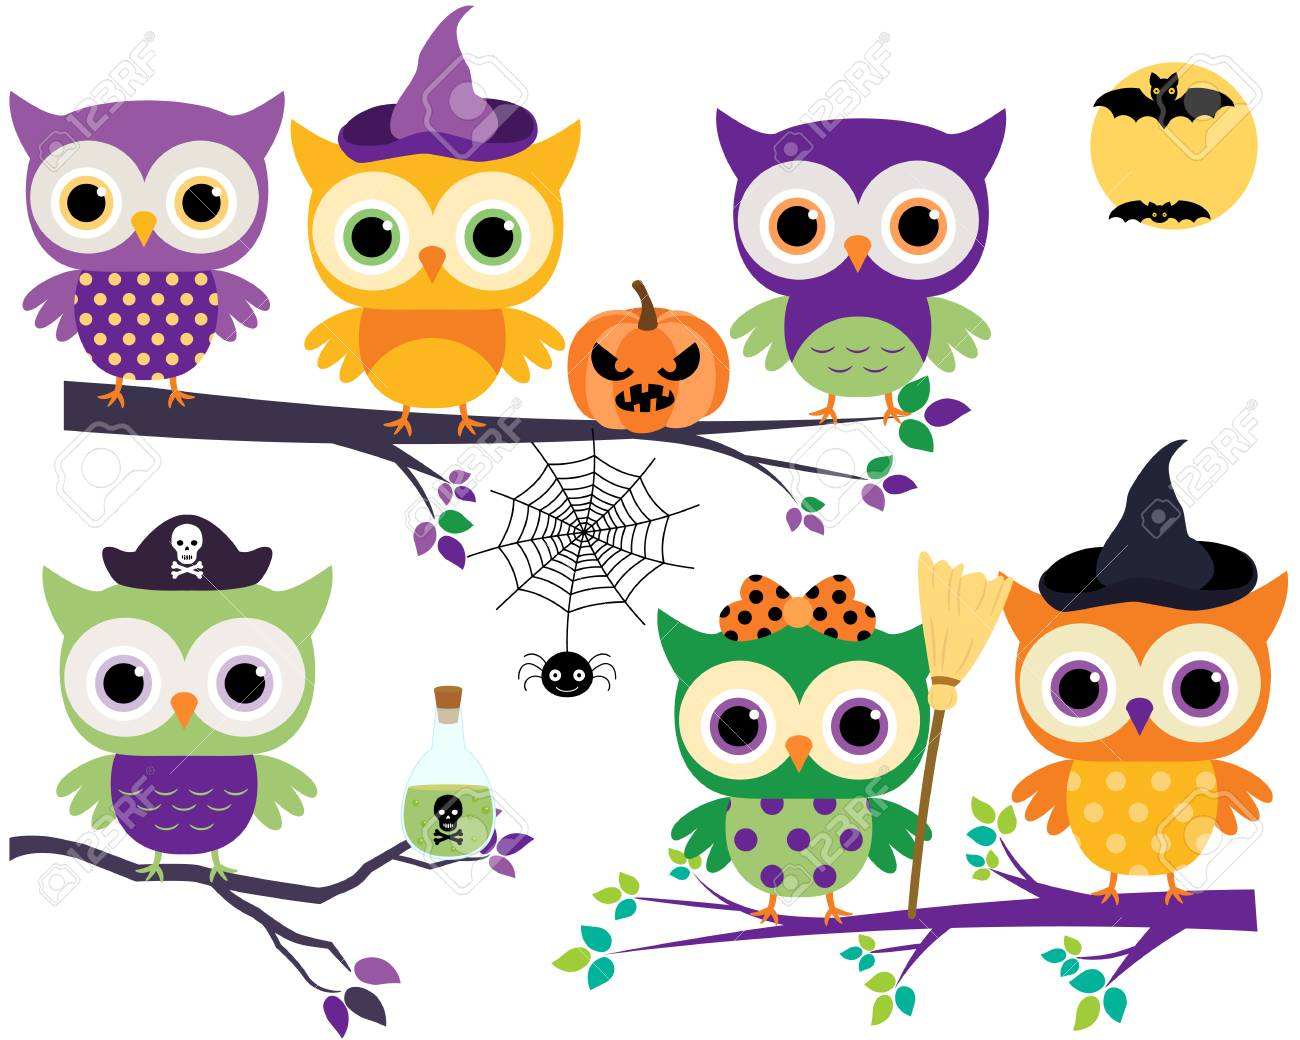 Cute Halloween Owls In Orange Purple And Green Colors On Tree Branches With Broom